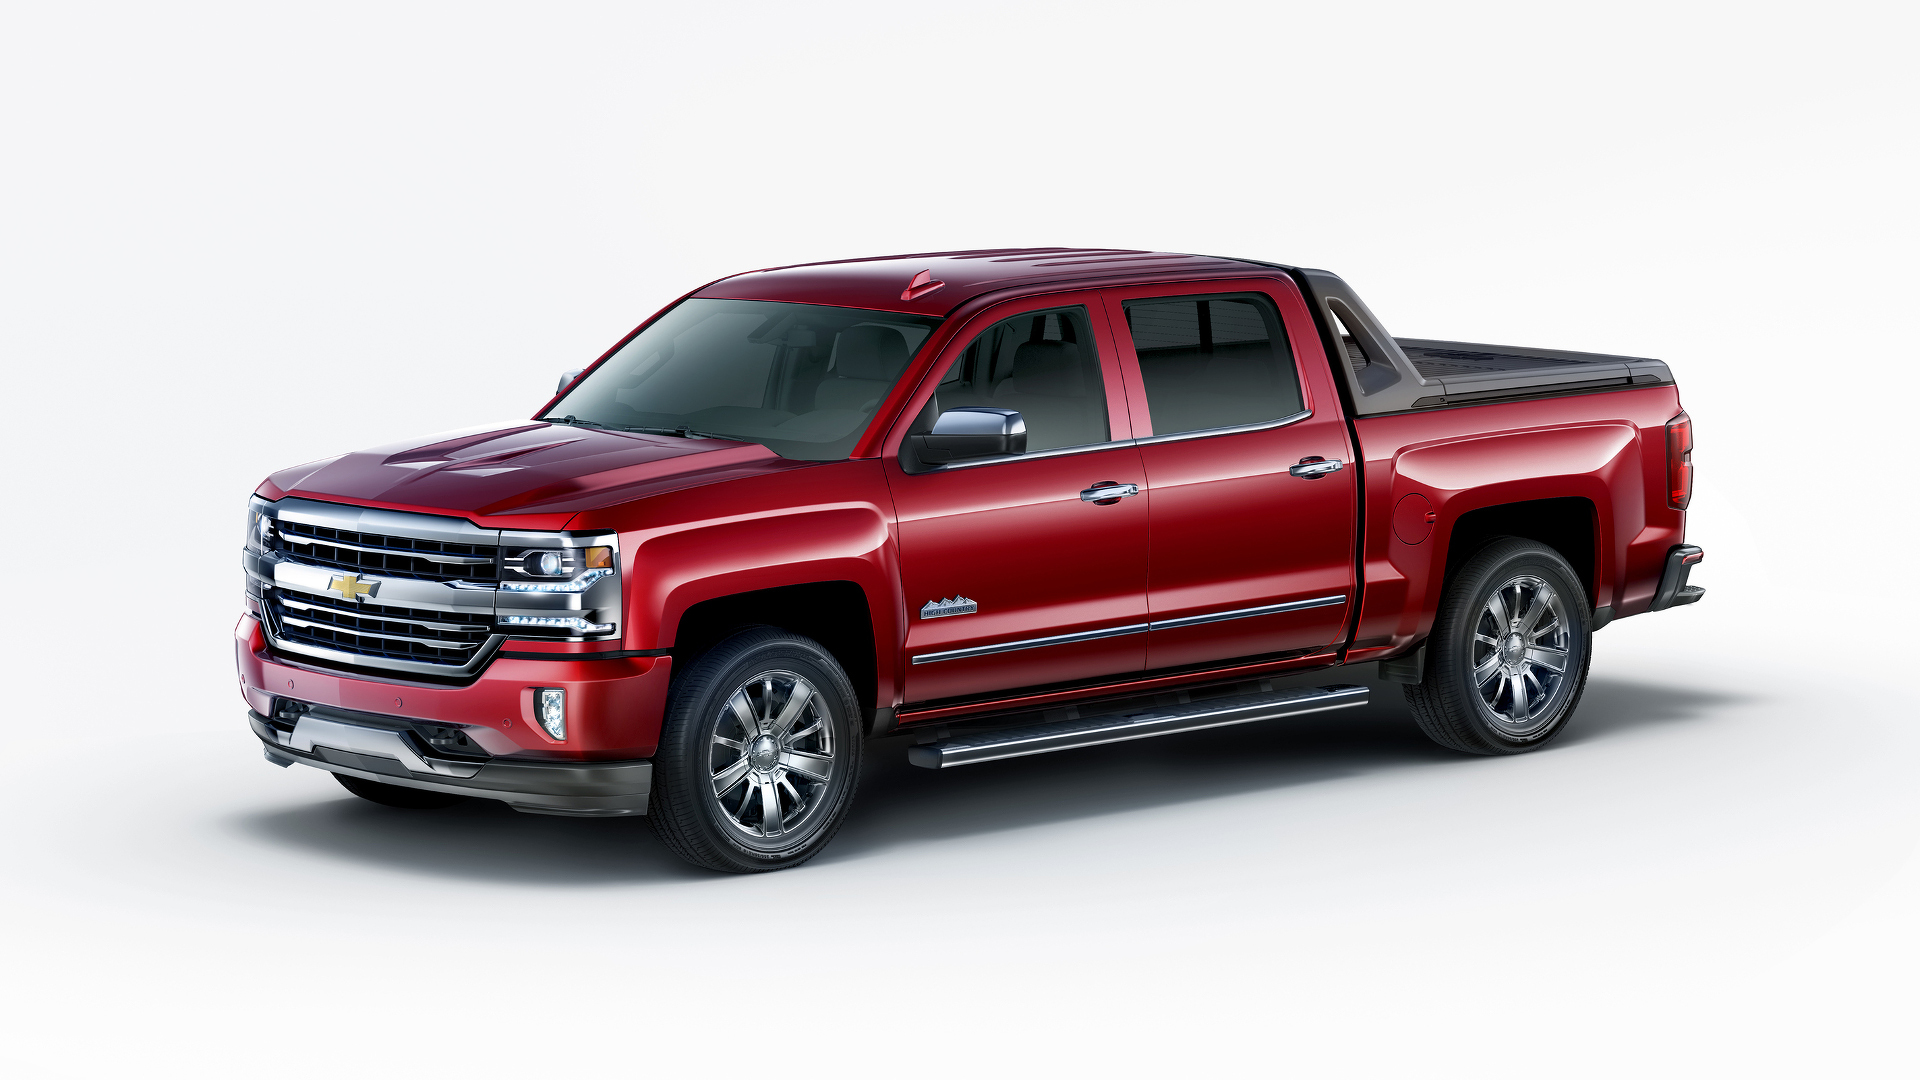 Will Chevy Make The Avalanche Again?